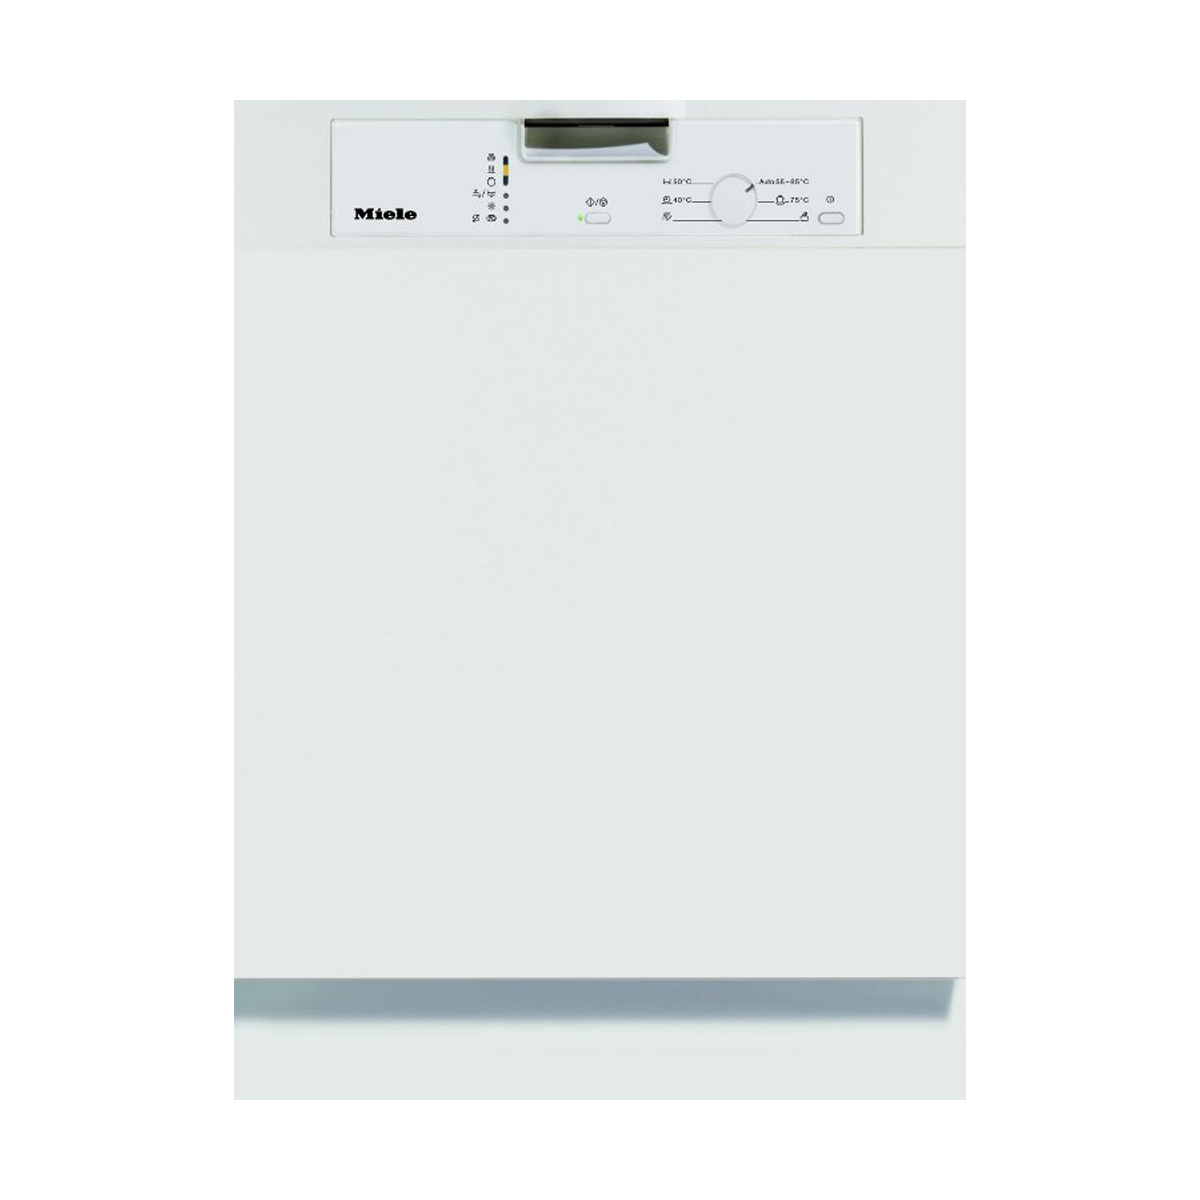 Miele G4100wh Dishwasher Review Compare Prices Buy Online